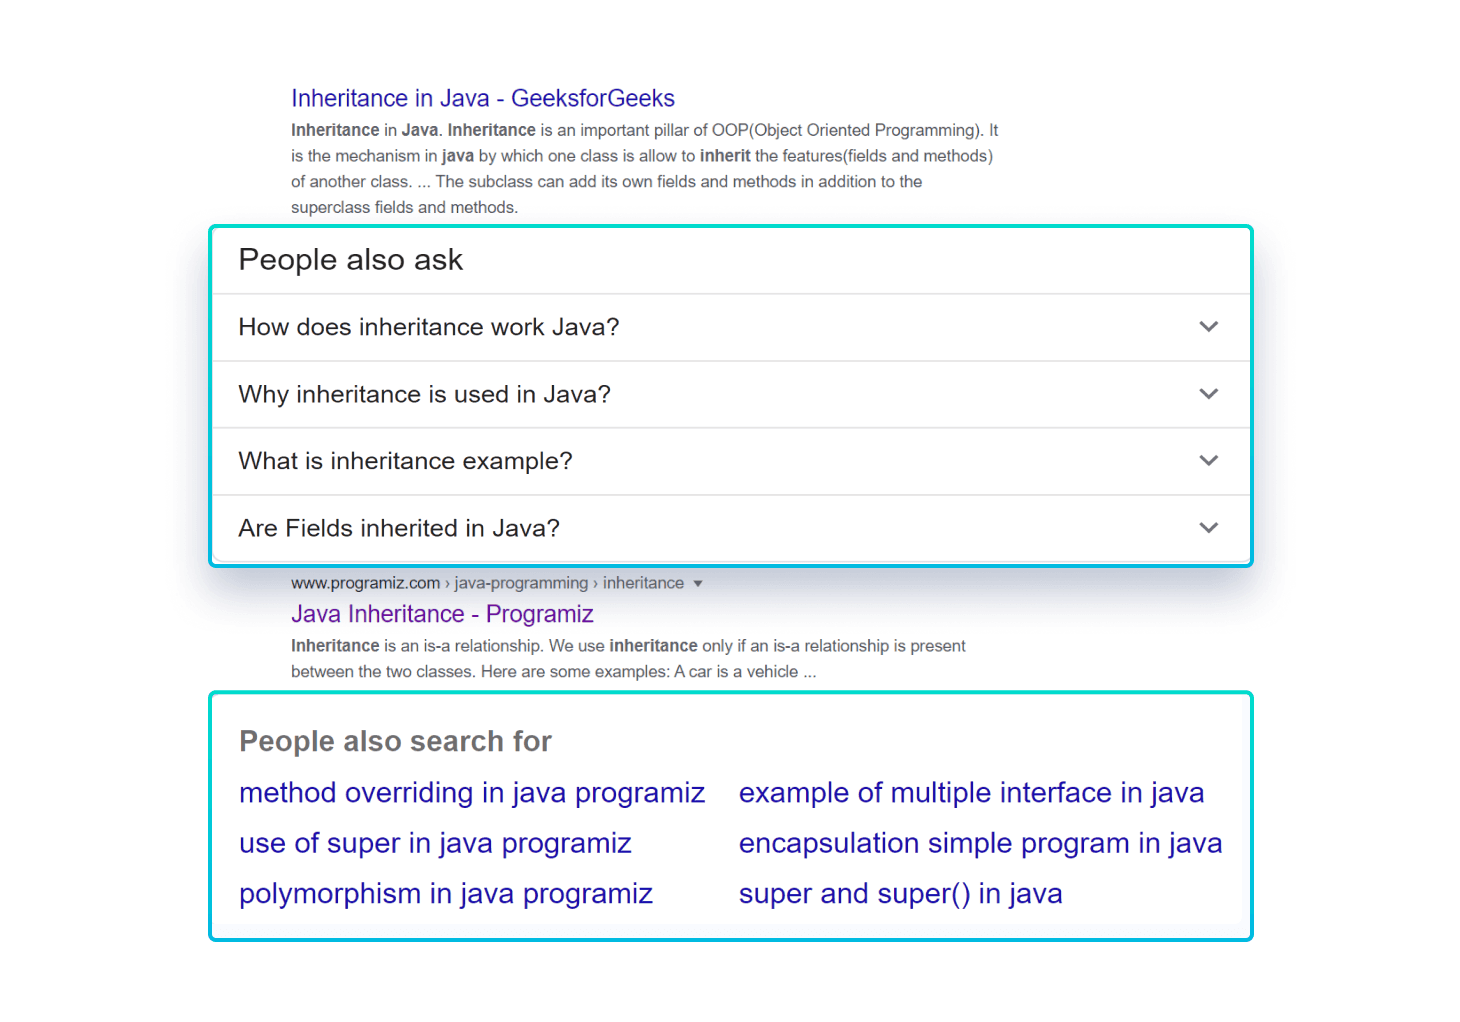 Showing People also ask and People also search for section for Java inheritance